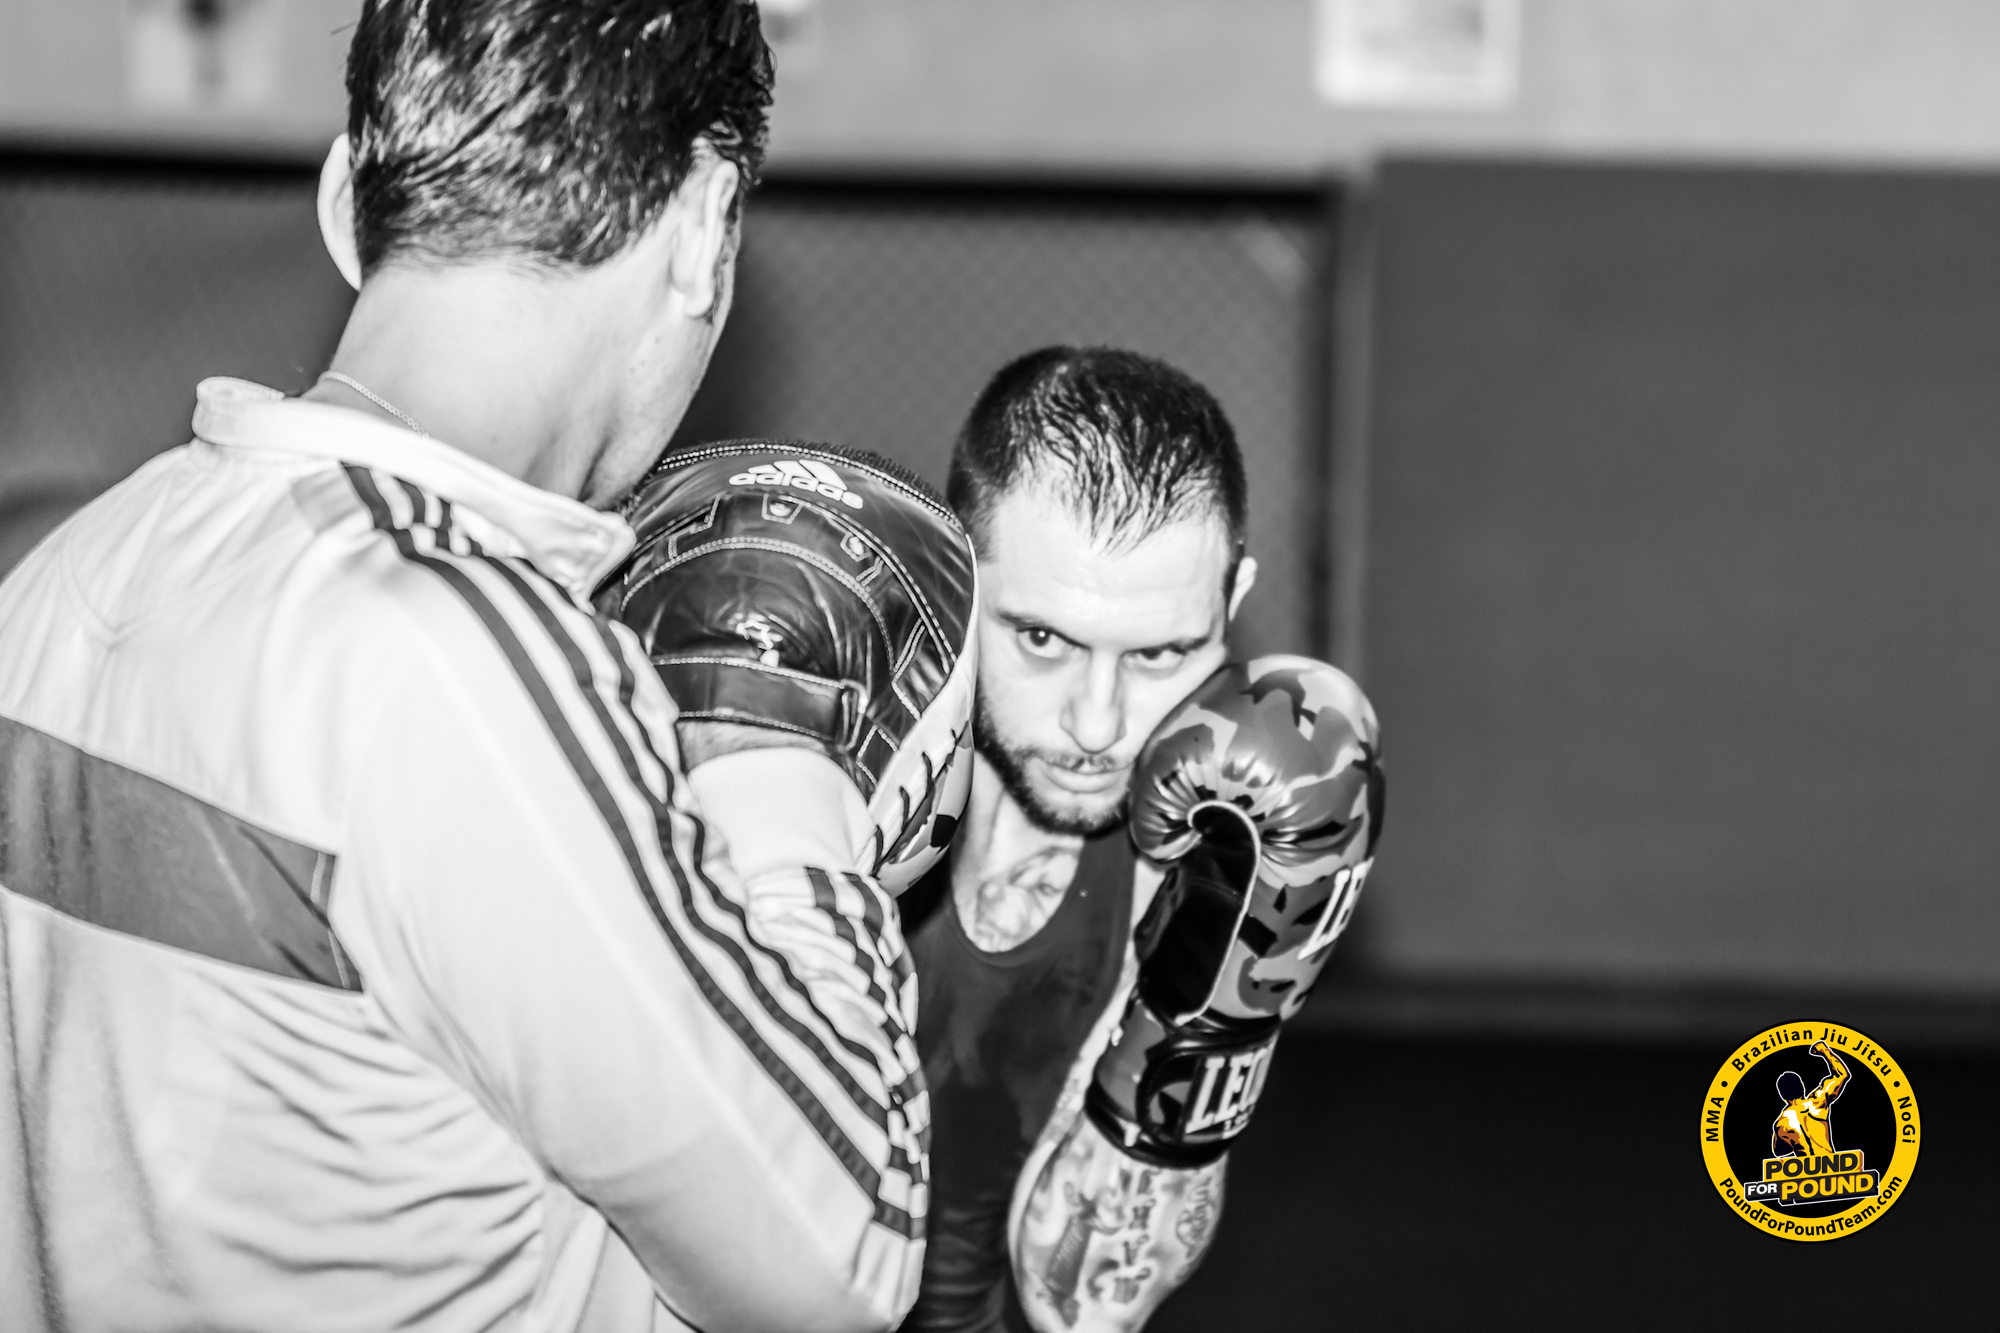 Boxen im Pound for Pound Gym